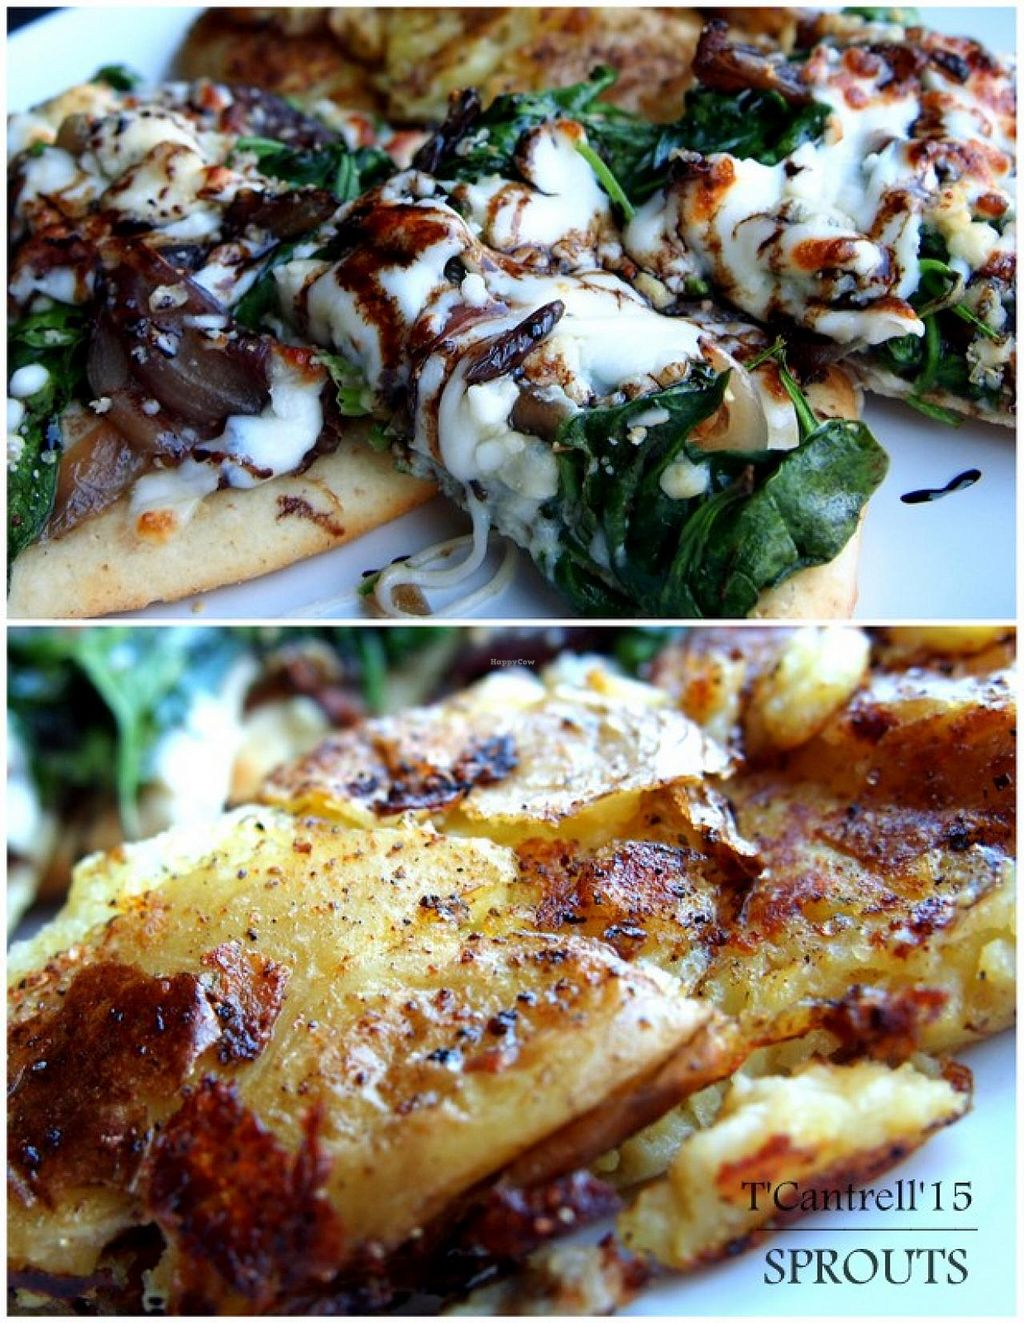 """Photo of Sprouts Cafe  by <a href=""""/members/profile/TammyCantrell"""">TammyCantrell</a> <br/> Caramelized Onion Gorgonzola & Spinach Pizza!  <br/> March 6, 2015  - <a href='/contact/abuse/image/41561/95036'>Report</a>"""